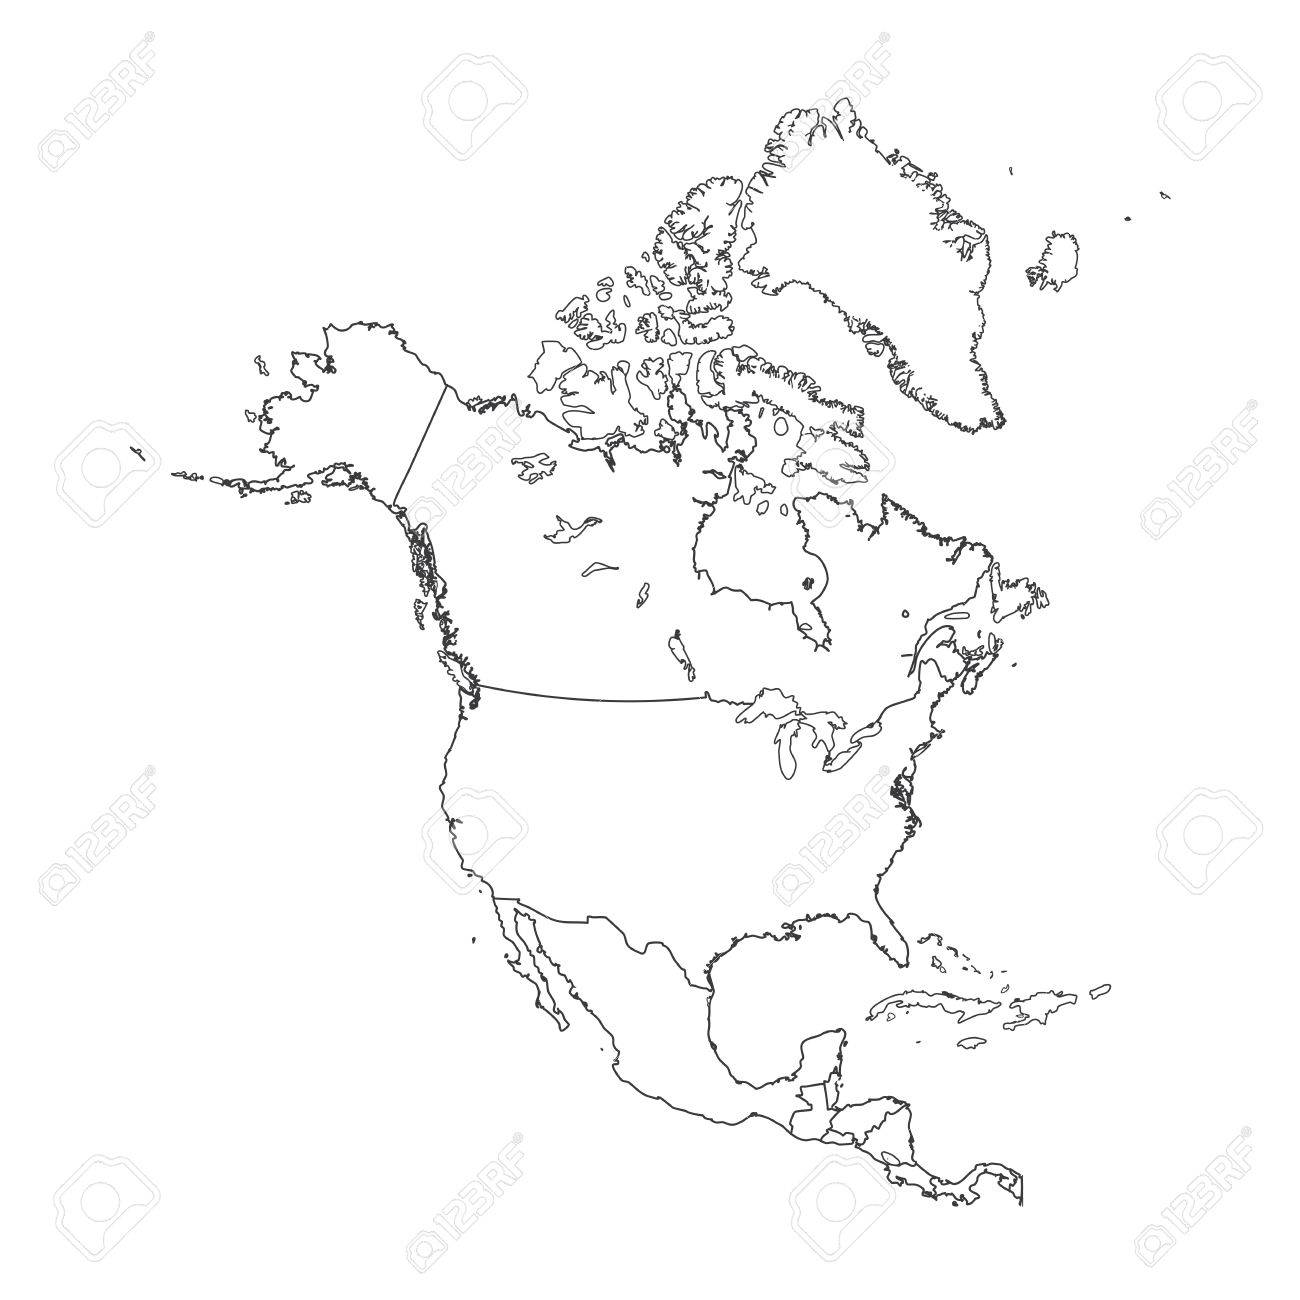 An Outline on clean background of the continent of North America on map of ocean sketch, map of hawaii sketch, map of kentucky sketch, map of bahrain sketch, map of new france sketch, africa map sketch, map of caribbean sketch, map of hong kong sketch, map of zambia sketch, map of world sketch, map of new jersey sketch, usa map sketch, map of mauritius sketch,